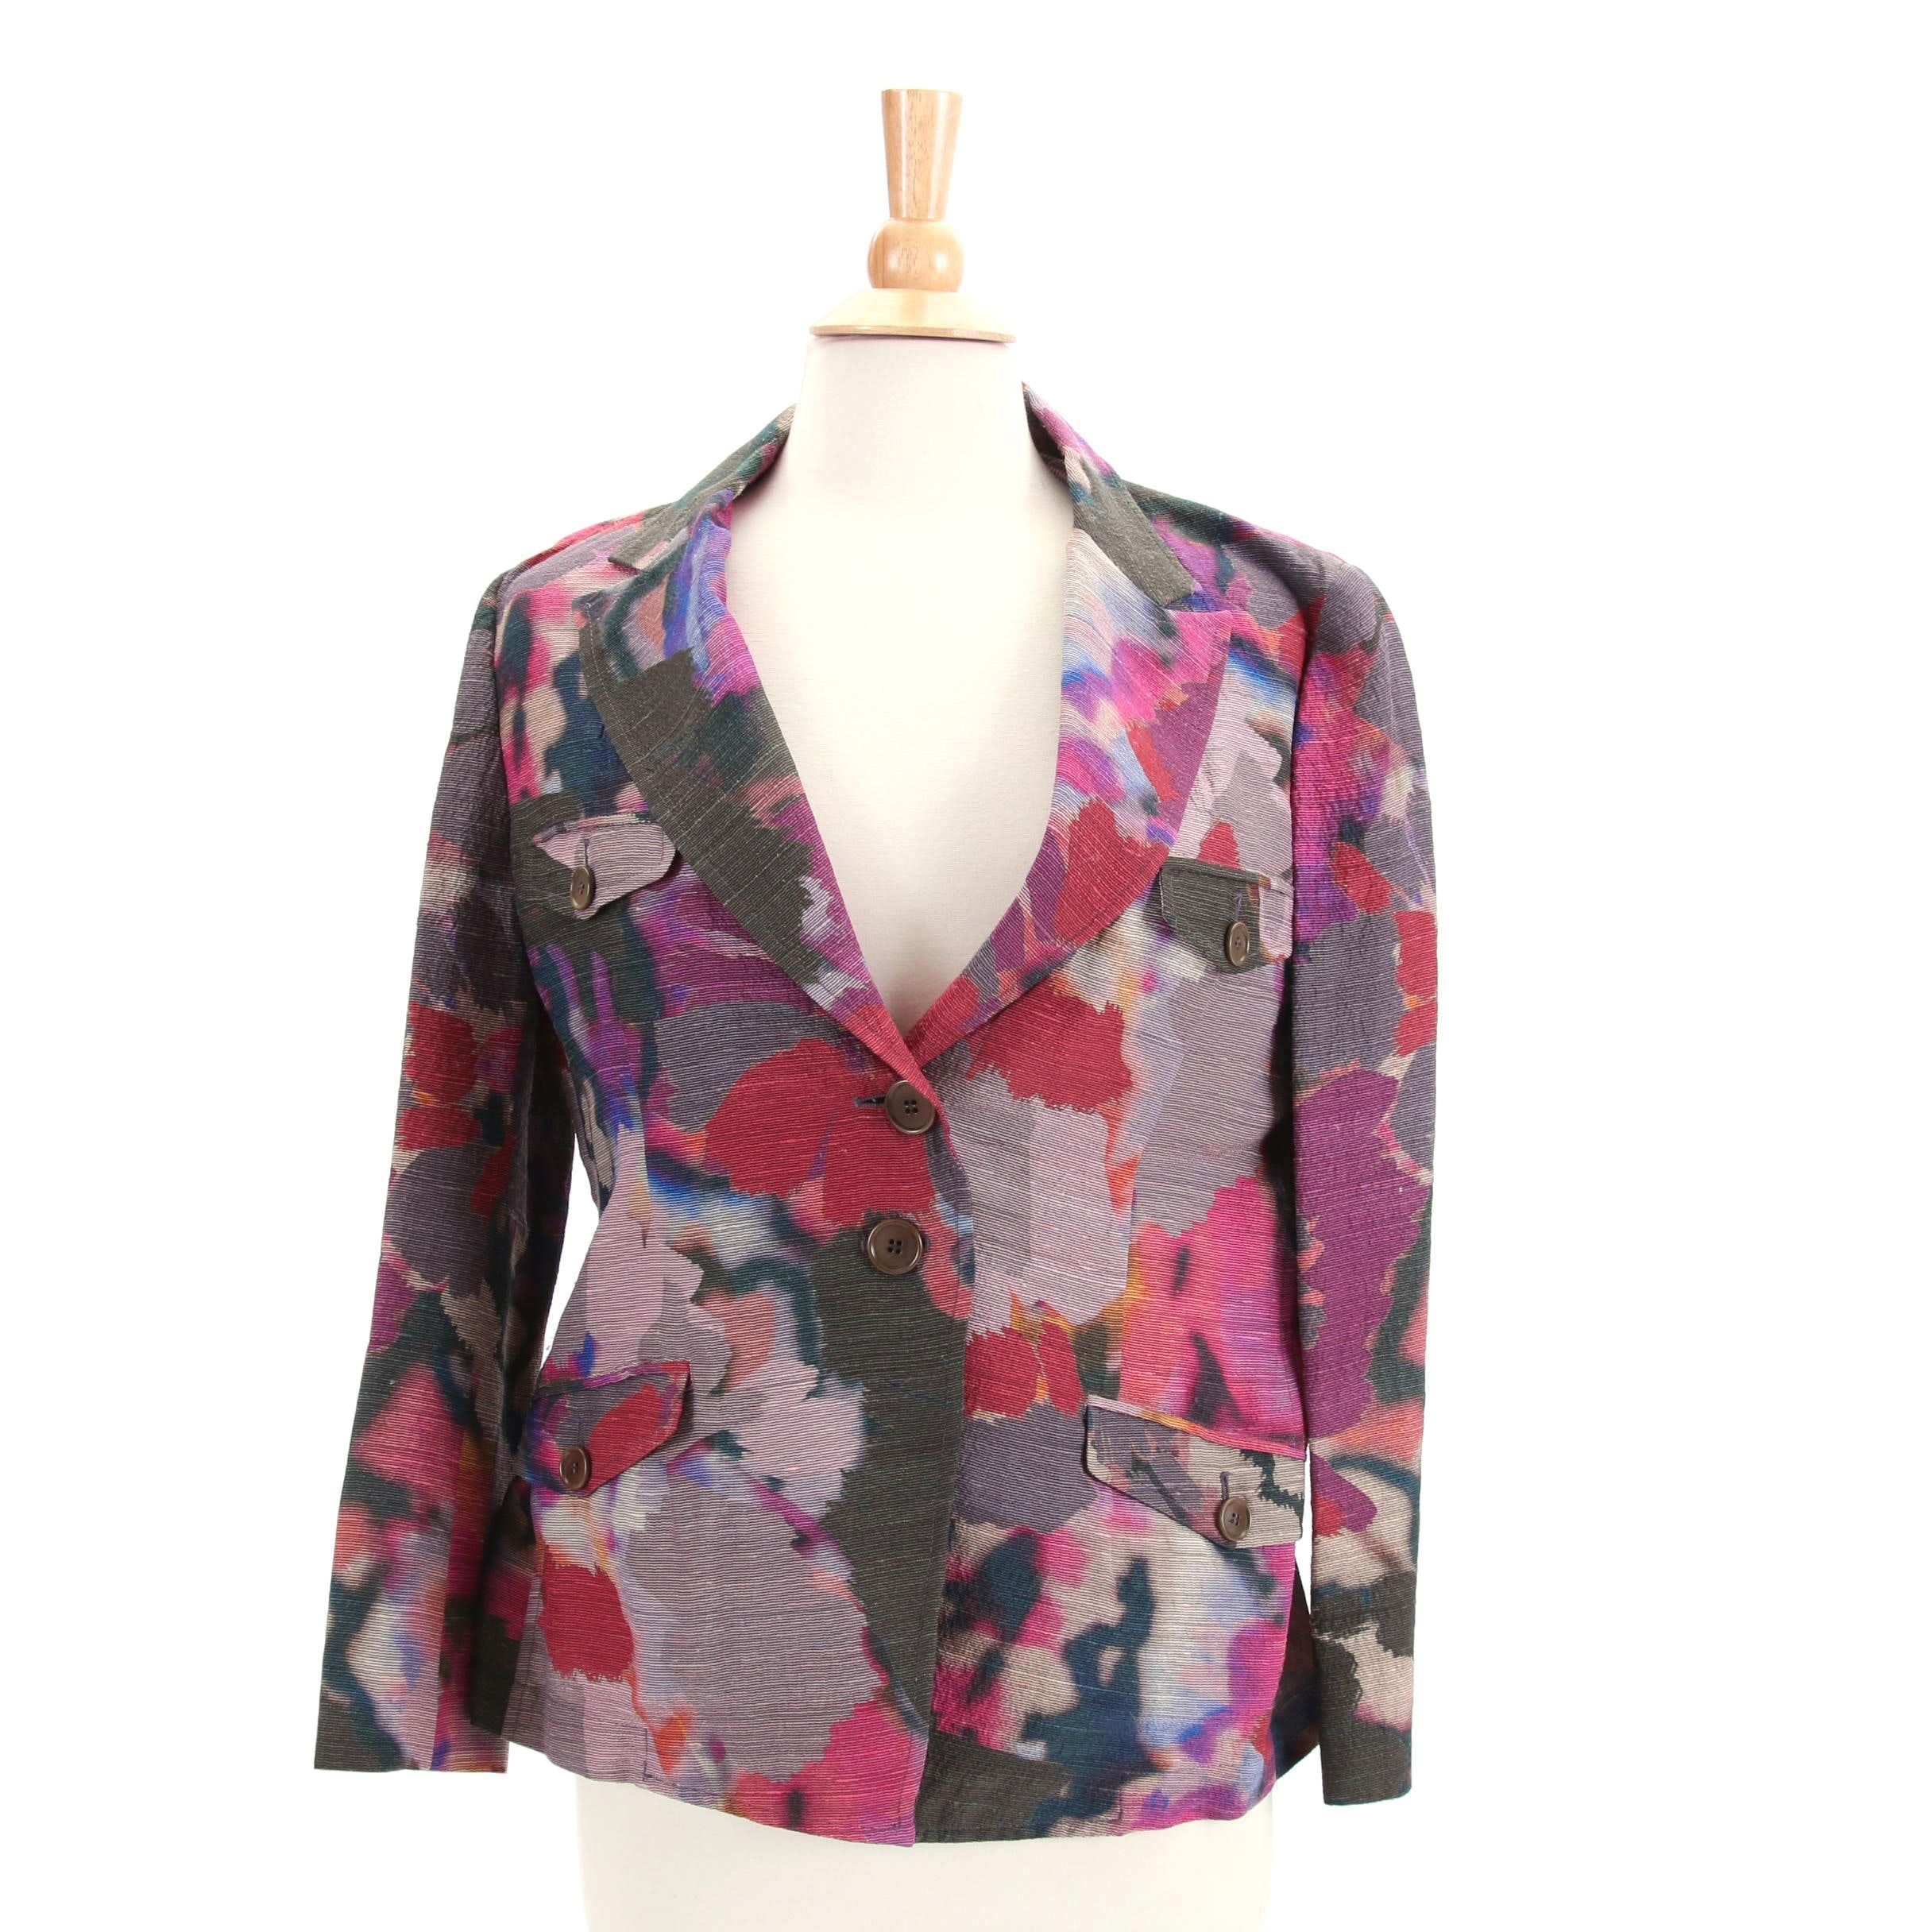 Women's Etro Silk Blend Floral Jacket